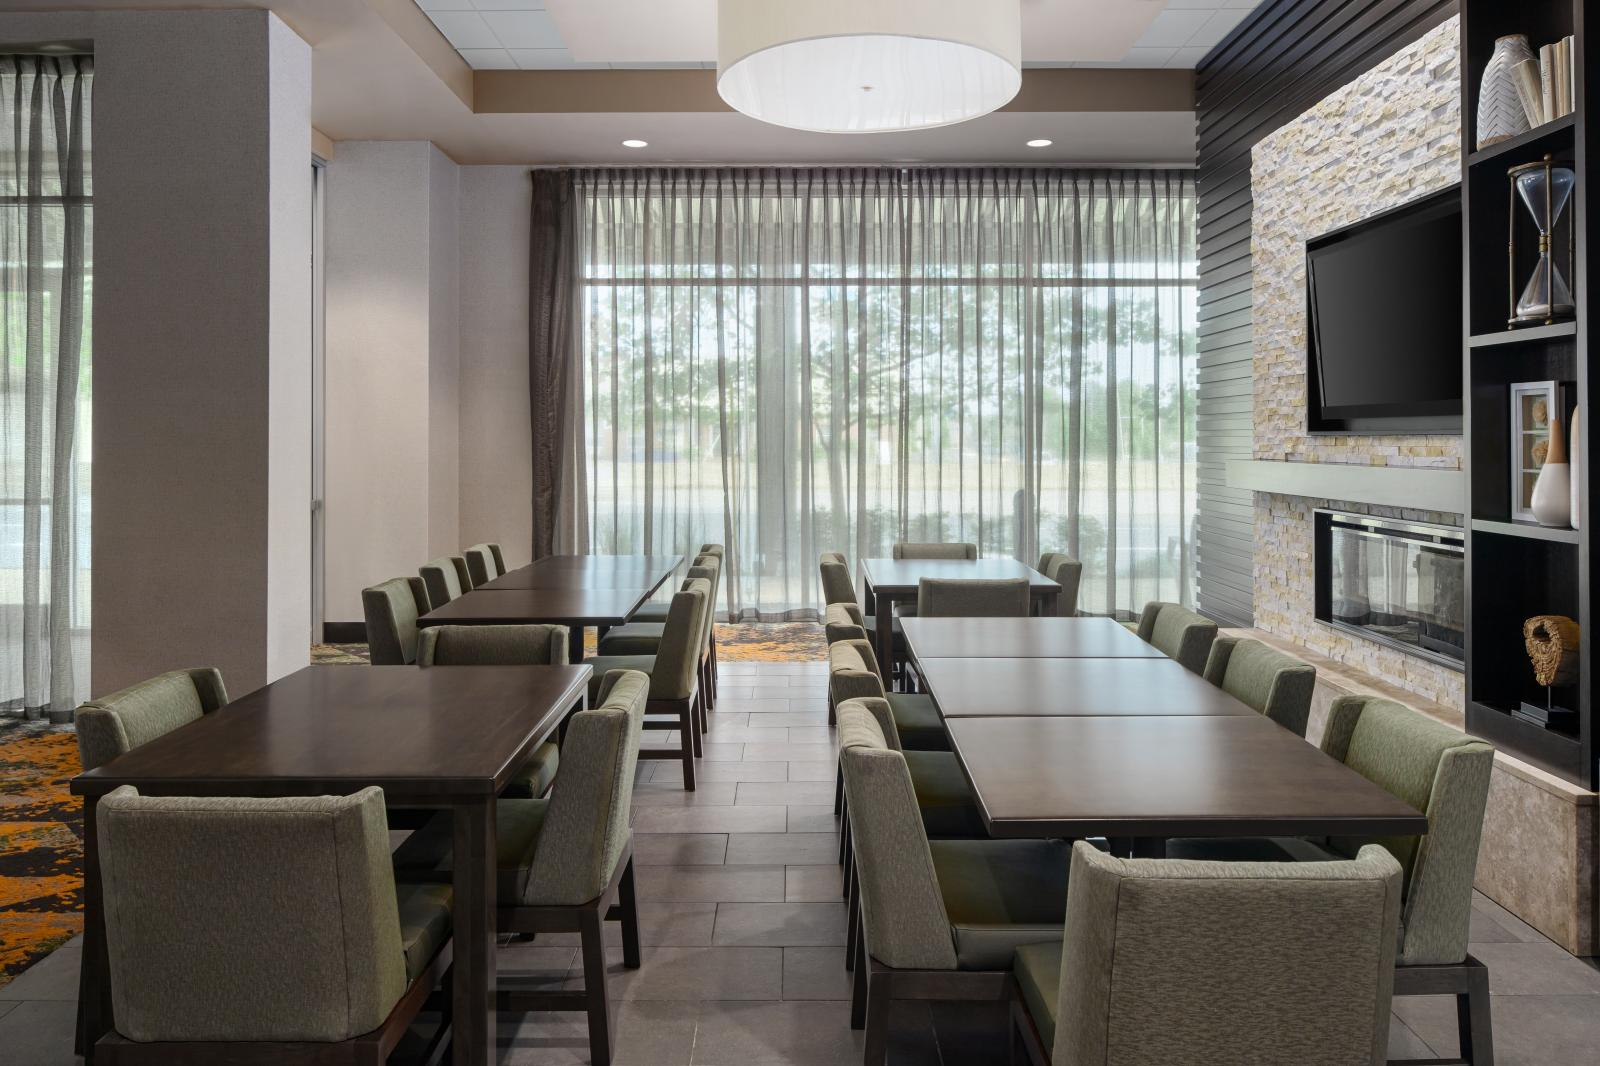 HOMEWOOD SUITES BY HILTON SPRINGFIELD, VIRGINIA